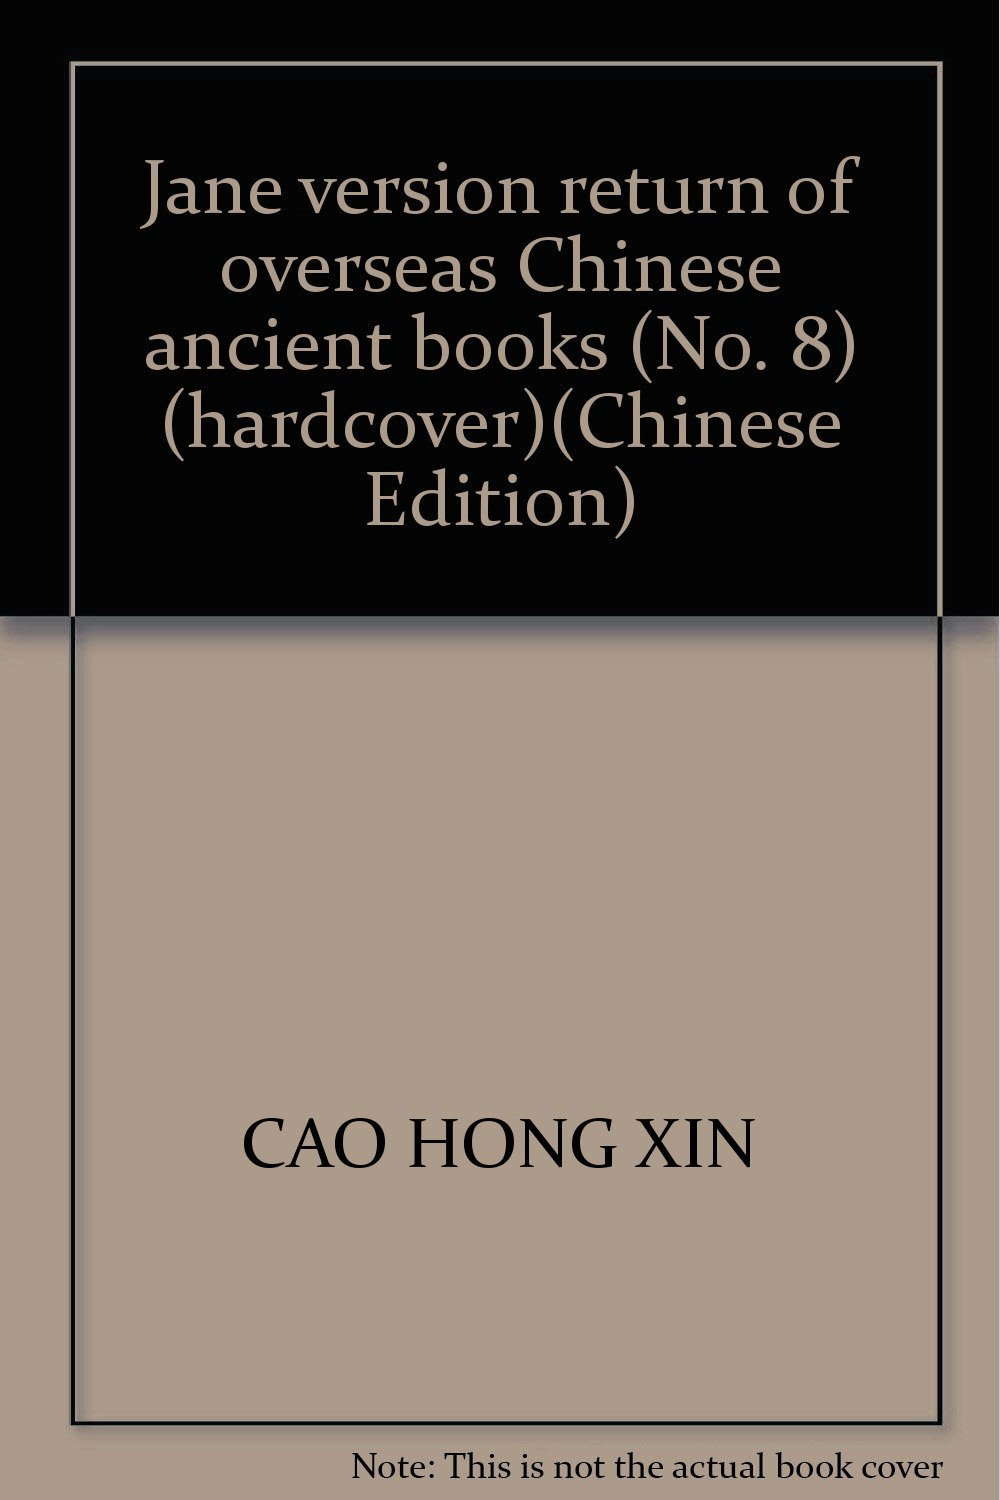 Jane version return of overseas Chinese ancient books (No. 8) (hardcover)(Chinese Edition) PDF Text fb2 ebook